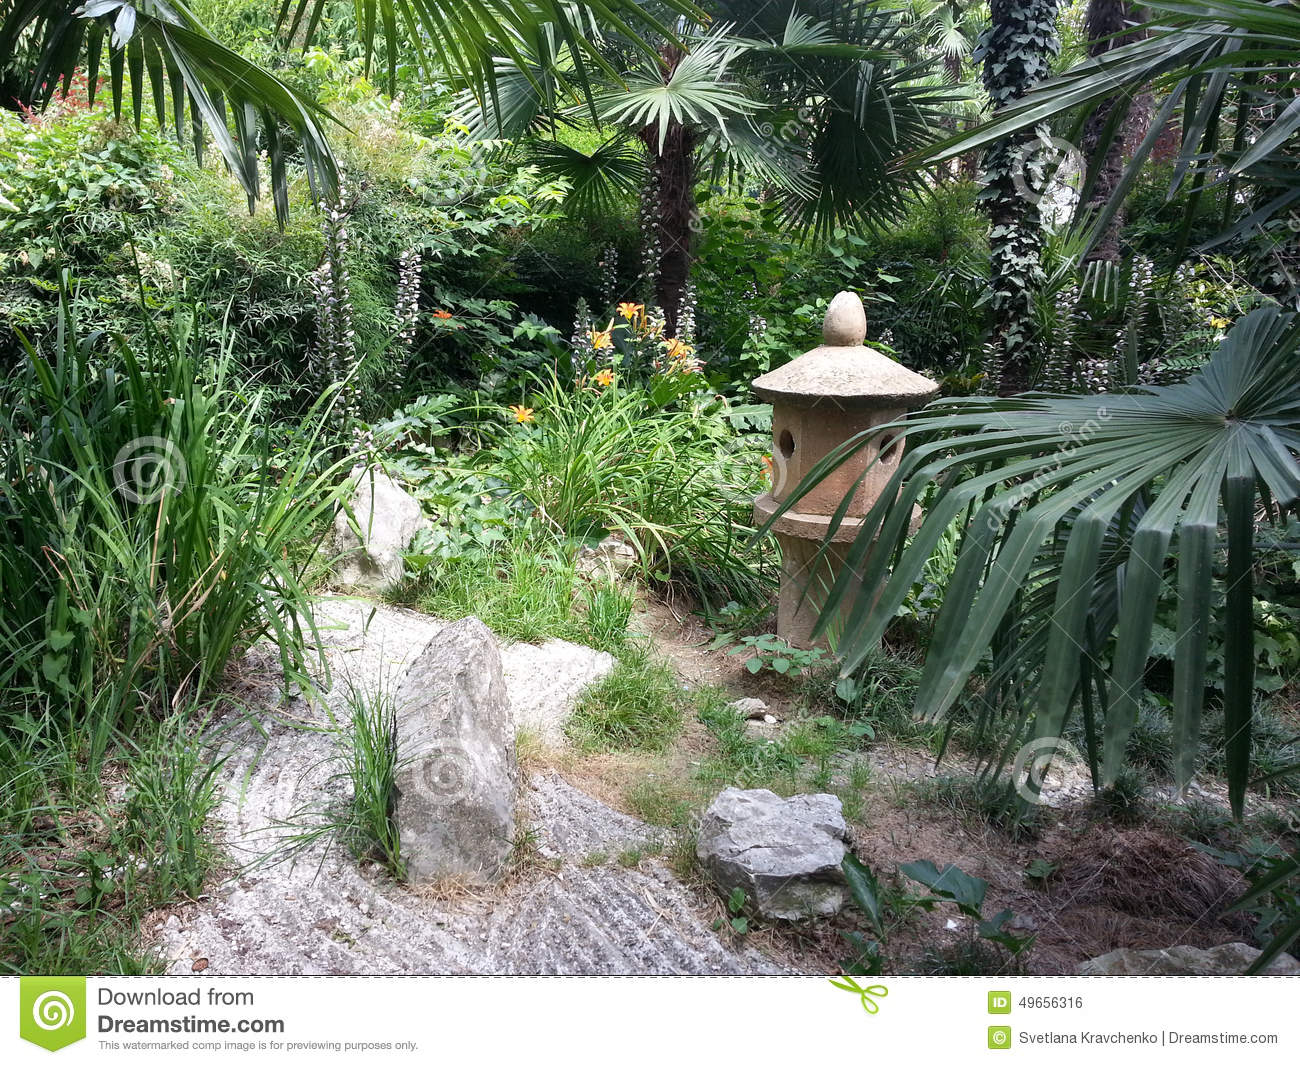 Palm trees and flowers in the Japanese garden